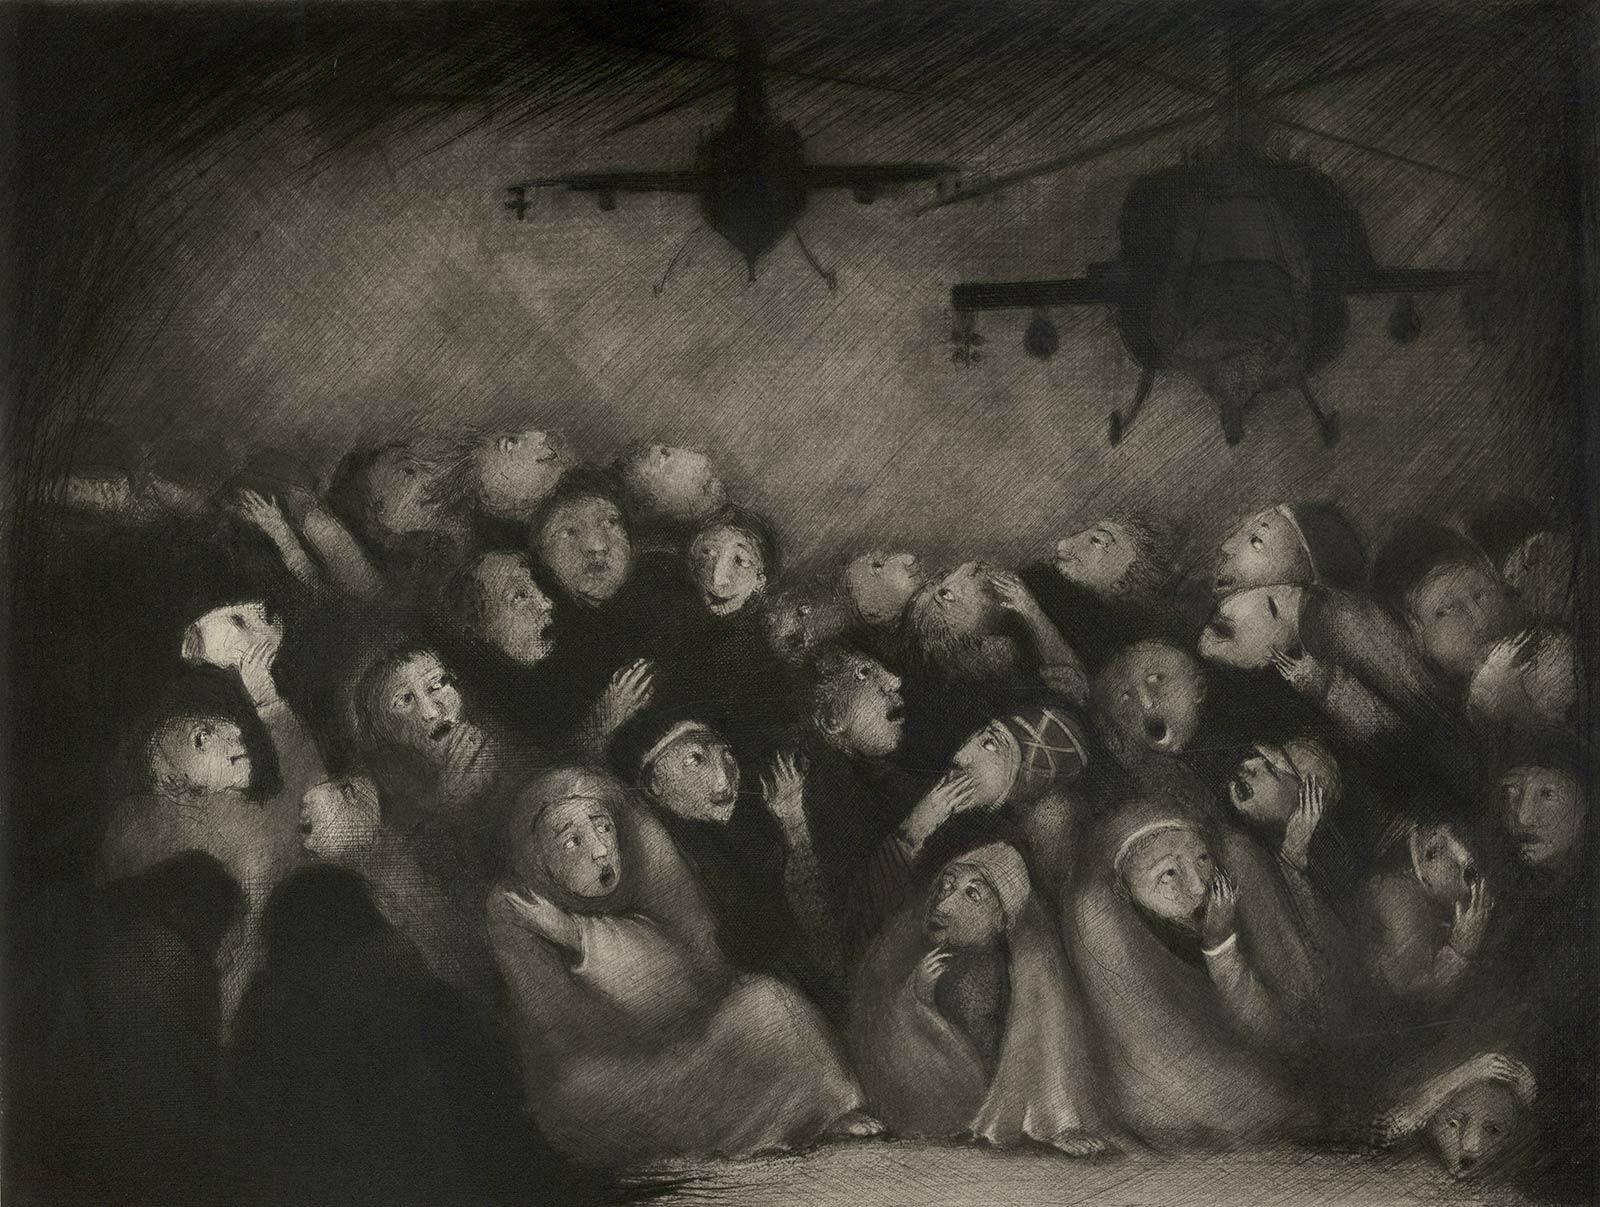 Lux Aeterna I (Eternal Light -The Requiem/ copters hover over fearful refugees)